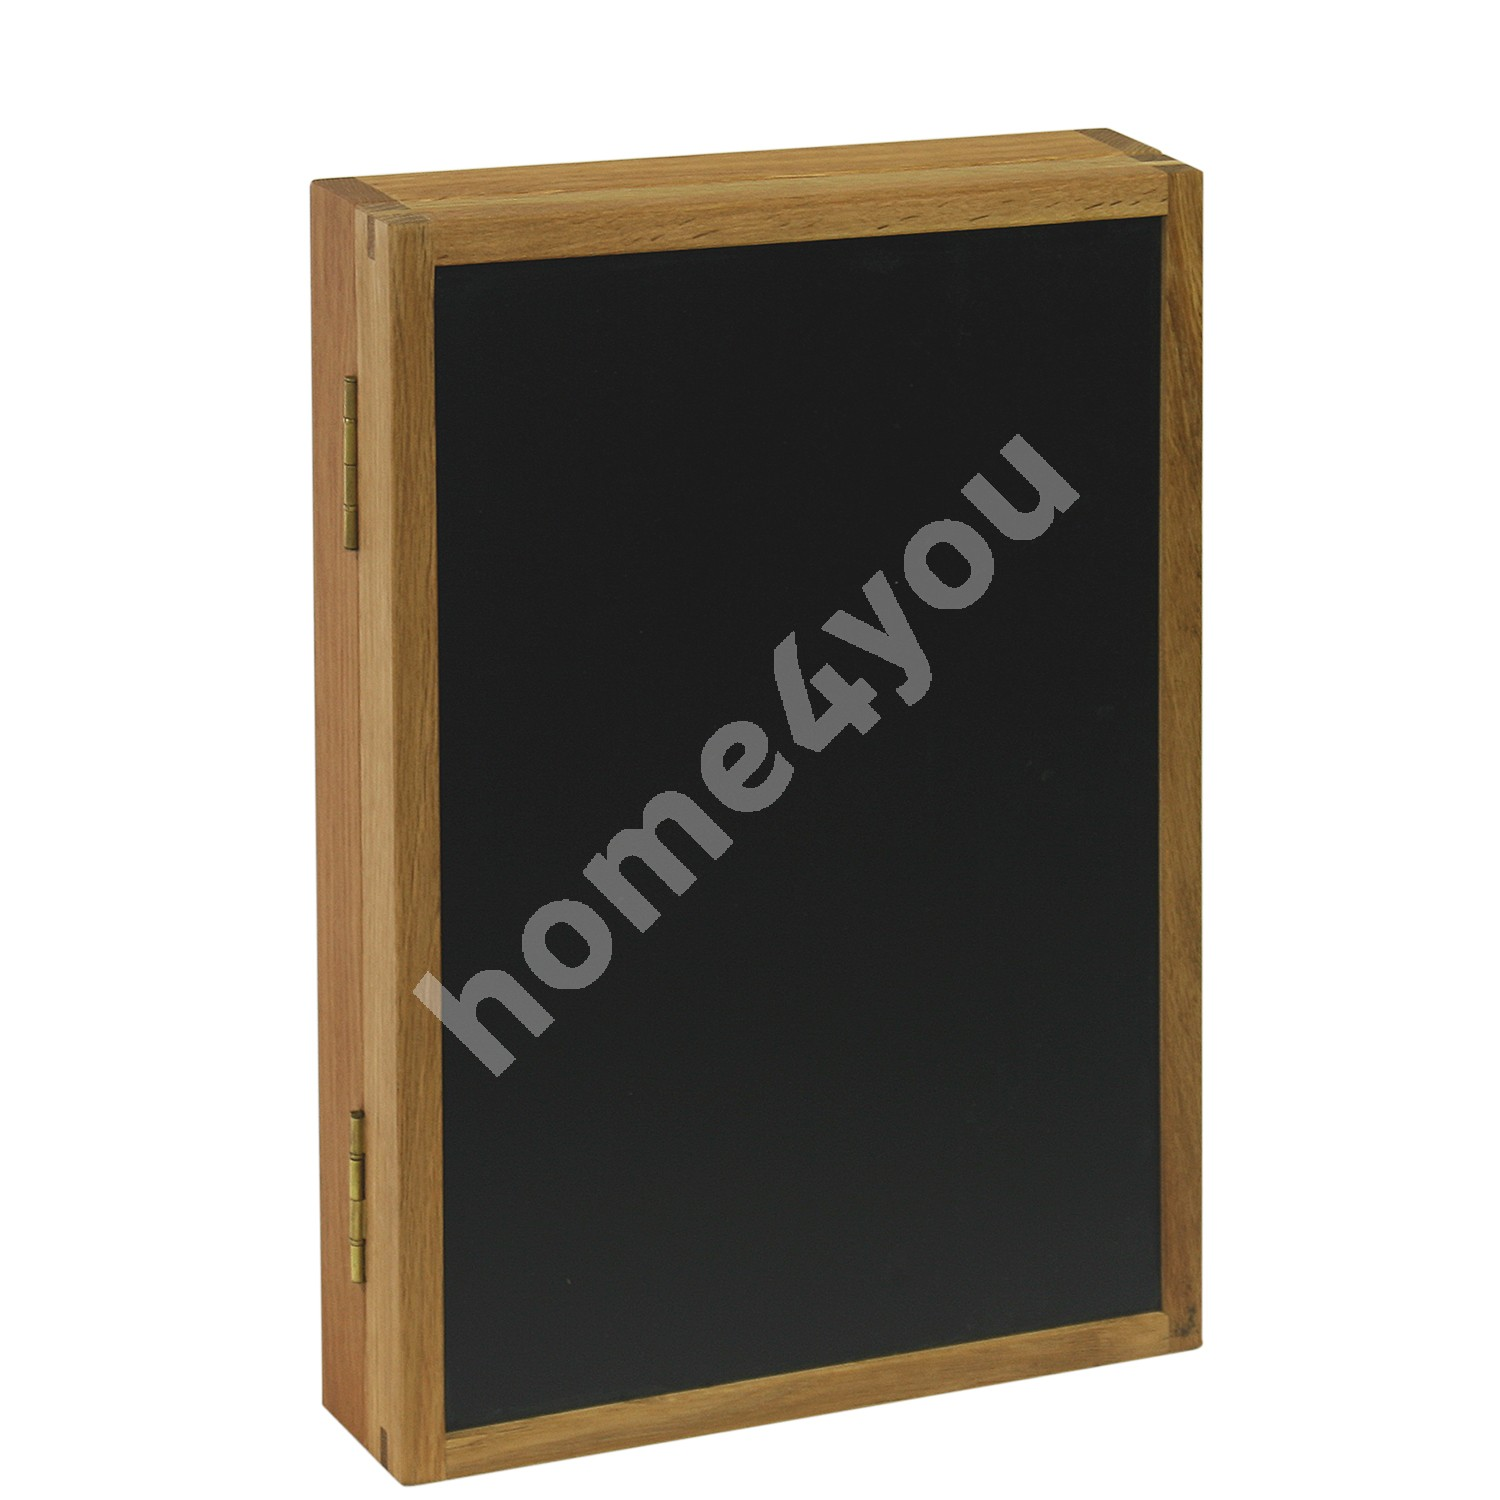 Key cabinet with blackboard MONDEO 42x30cm, wood: oak, finishing: oiled